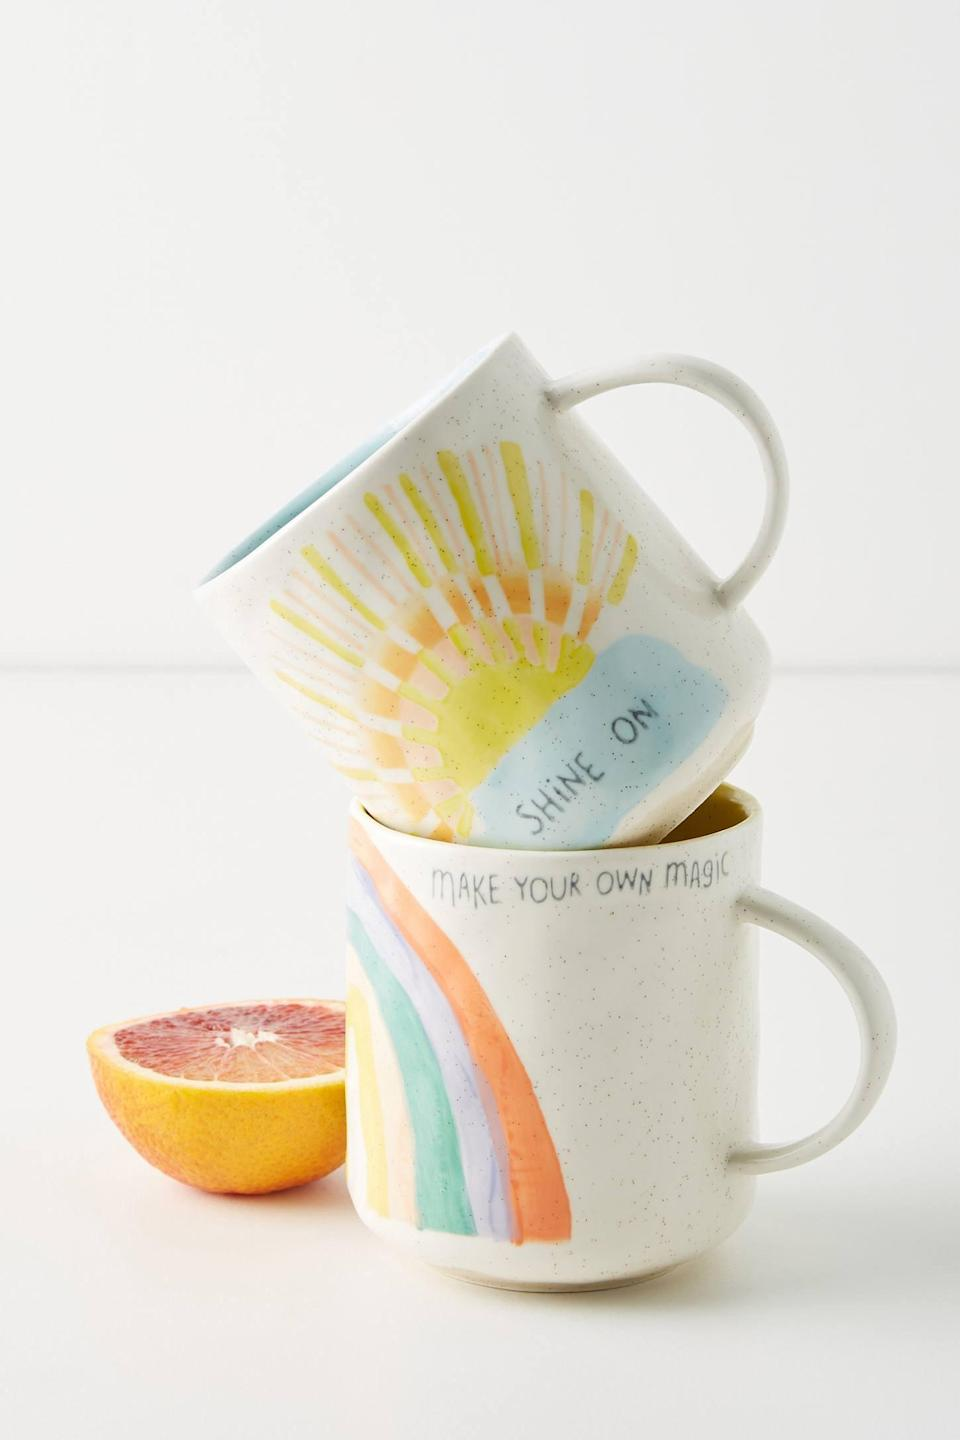 "<p>Feel good drinking your morning coffee from this <a href=""https://www.popsugar.com/buy/Positive-Vibes-Mug-562181?p_name=Positive%20Vibes%20Mug&retailer=anthropologie.com&pid=562181&price=14&evar1=casa%3Aus&evar9=47360872&evar98=https%3A%2F%2Fwww.popsugar.com%2Fhome%2Fphoto-gallery%2F47360872%2Fimage%2F47361140%2FPositive-Vibes-Mug&list1=shopping%2Chome%20decor%2Cdecor%20shopping%2Chome%20shopping&prop13=api&pdata=1"" rel=""nofollow noopener"" class=""link rapid-noclick-resp"" target=""_blank"" data-ylk=""slk:Positive Vibes Mug"">Positive Vibes Mug</a> ($14).</p>"